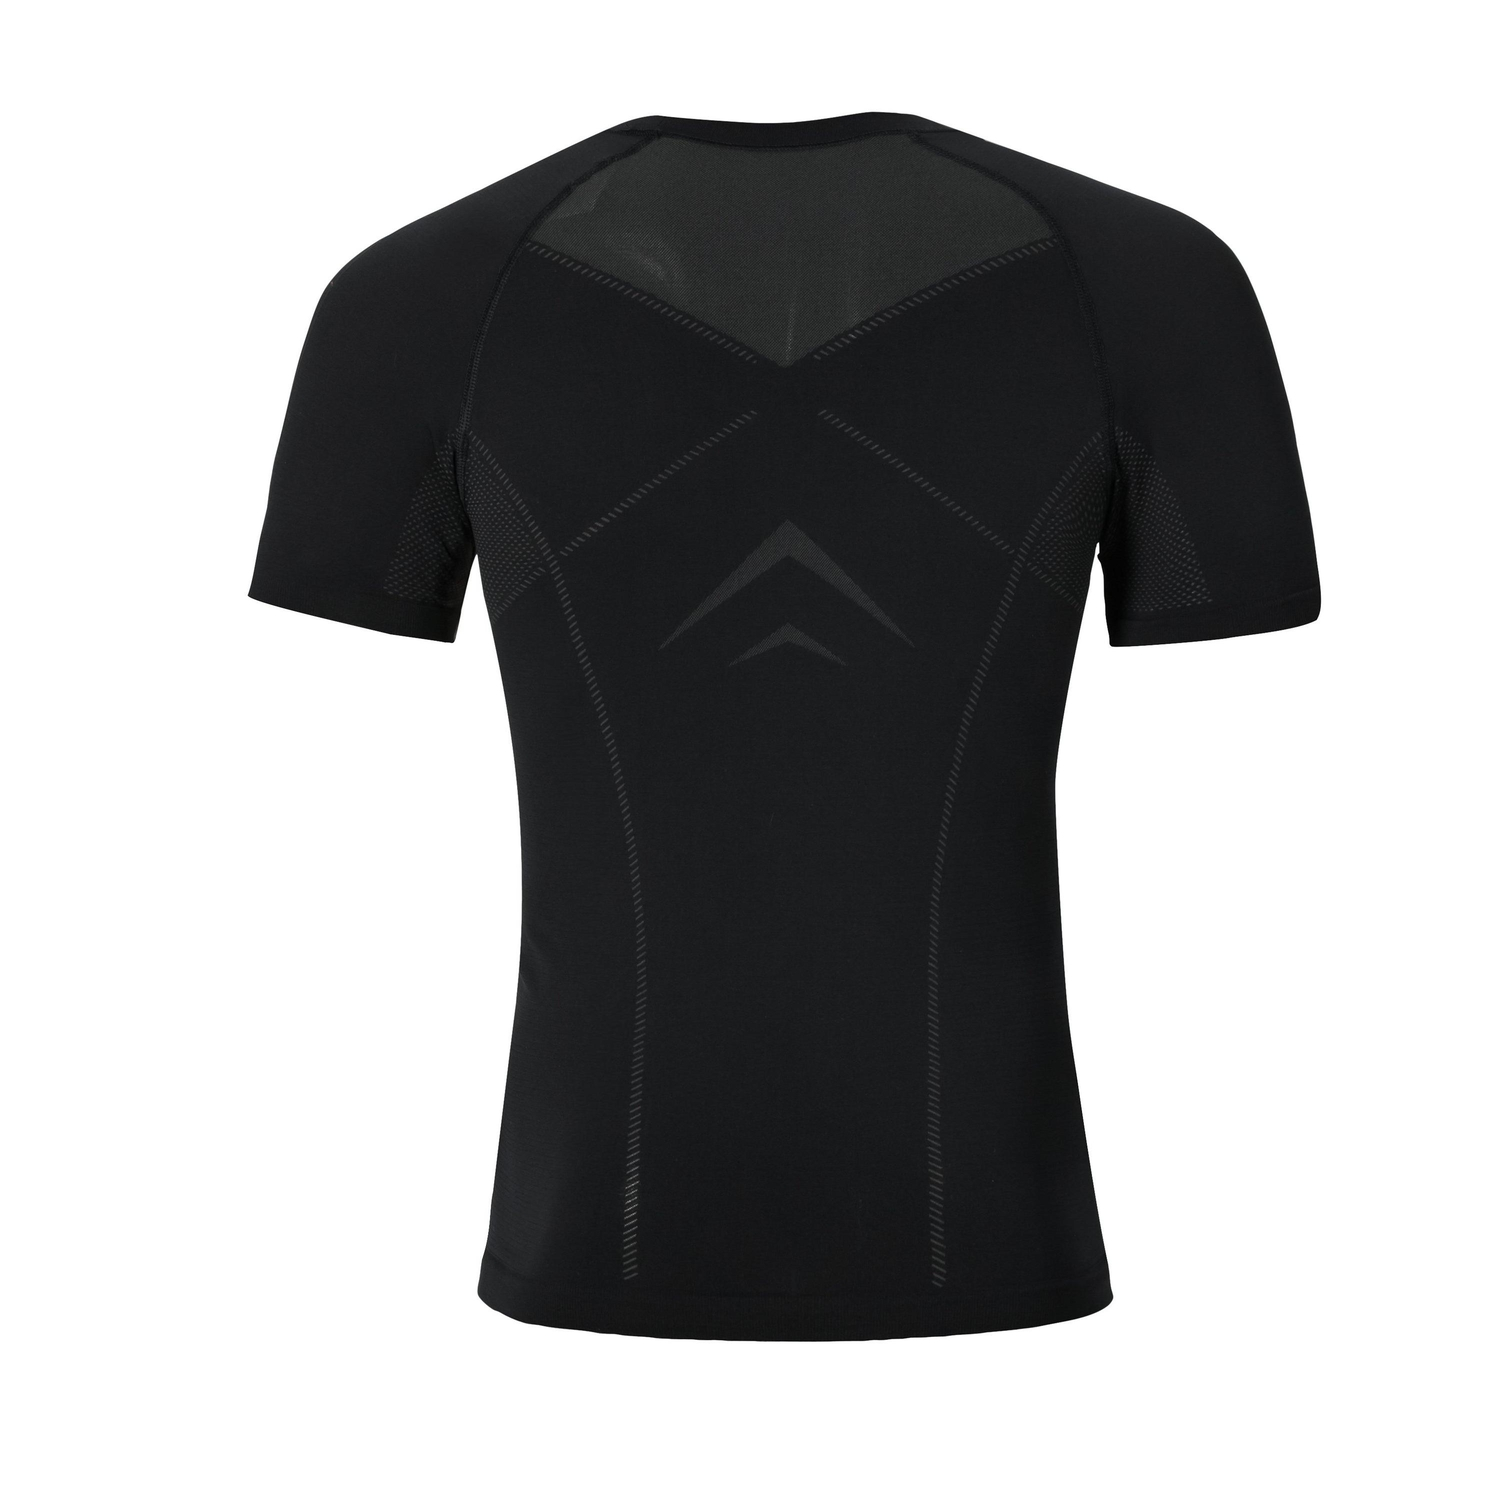 Camiseta térmica EVOLUTION LIGHT para hombre - Outlet %  aa0b46fff44df